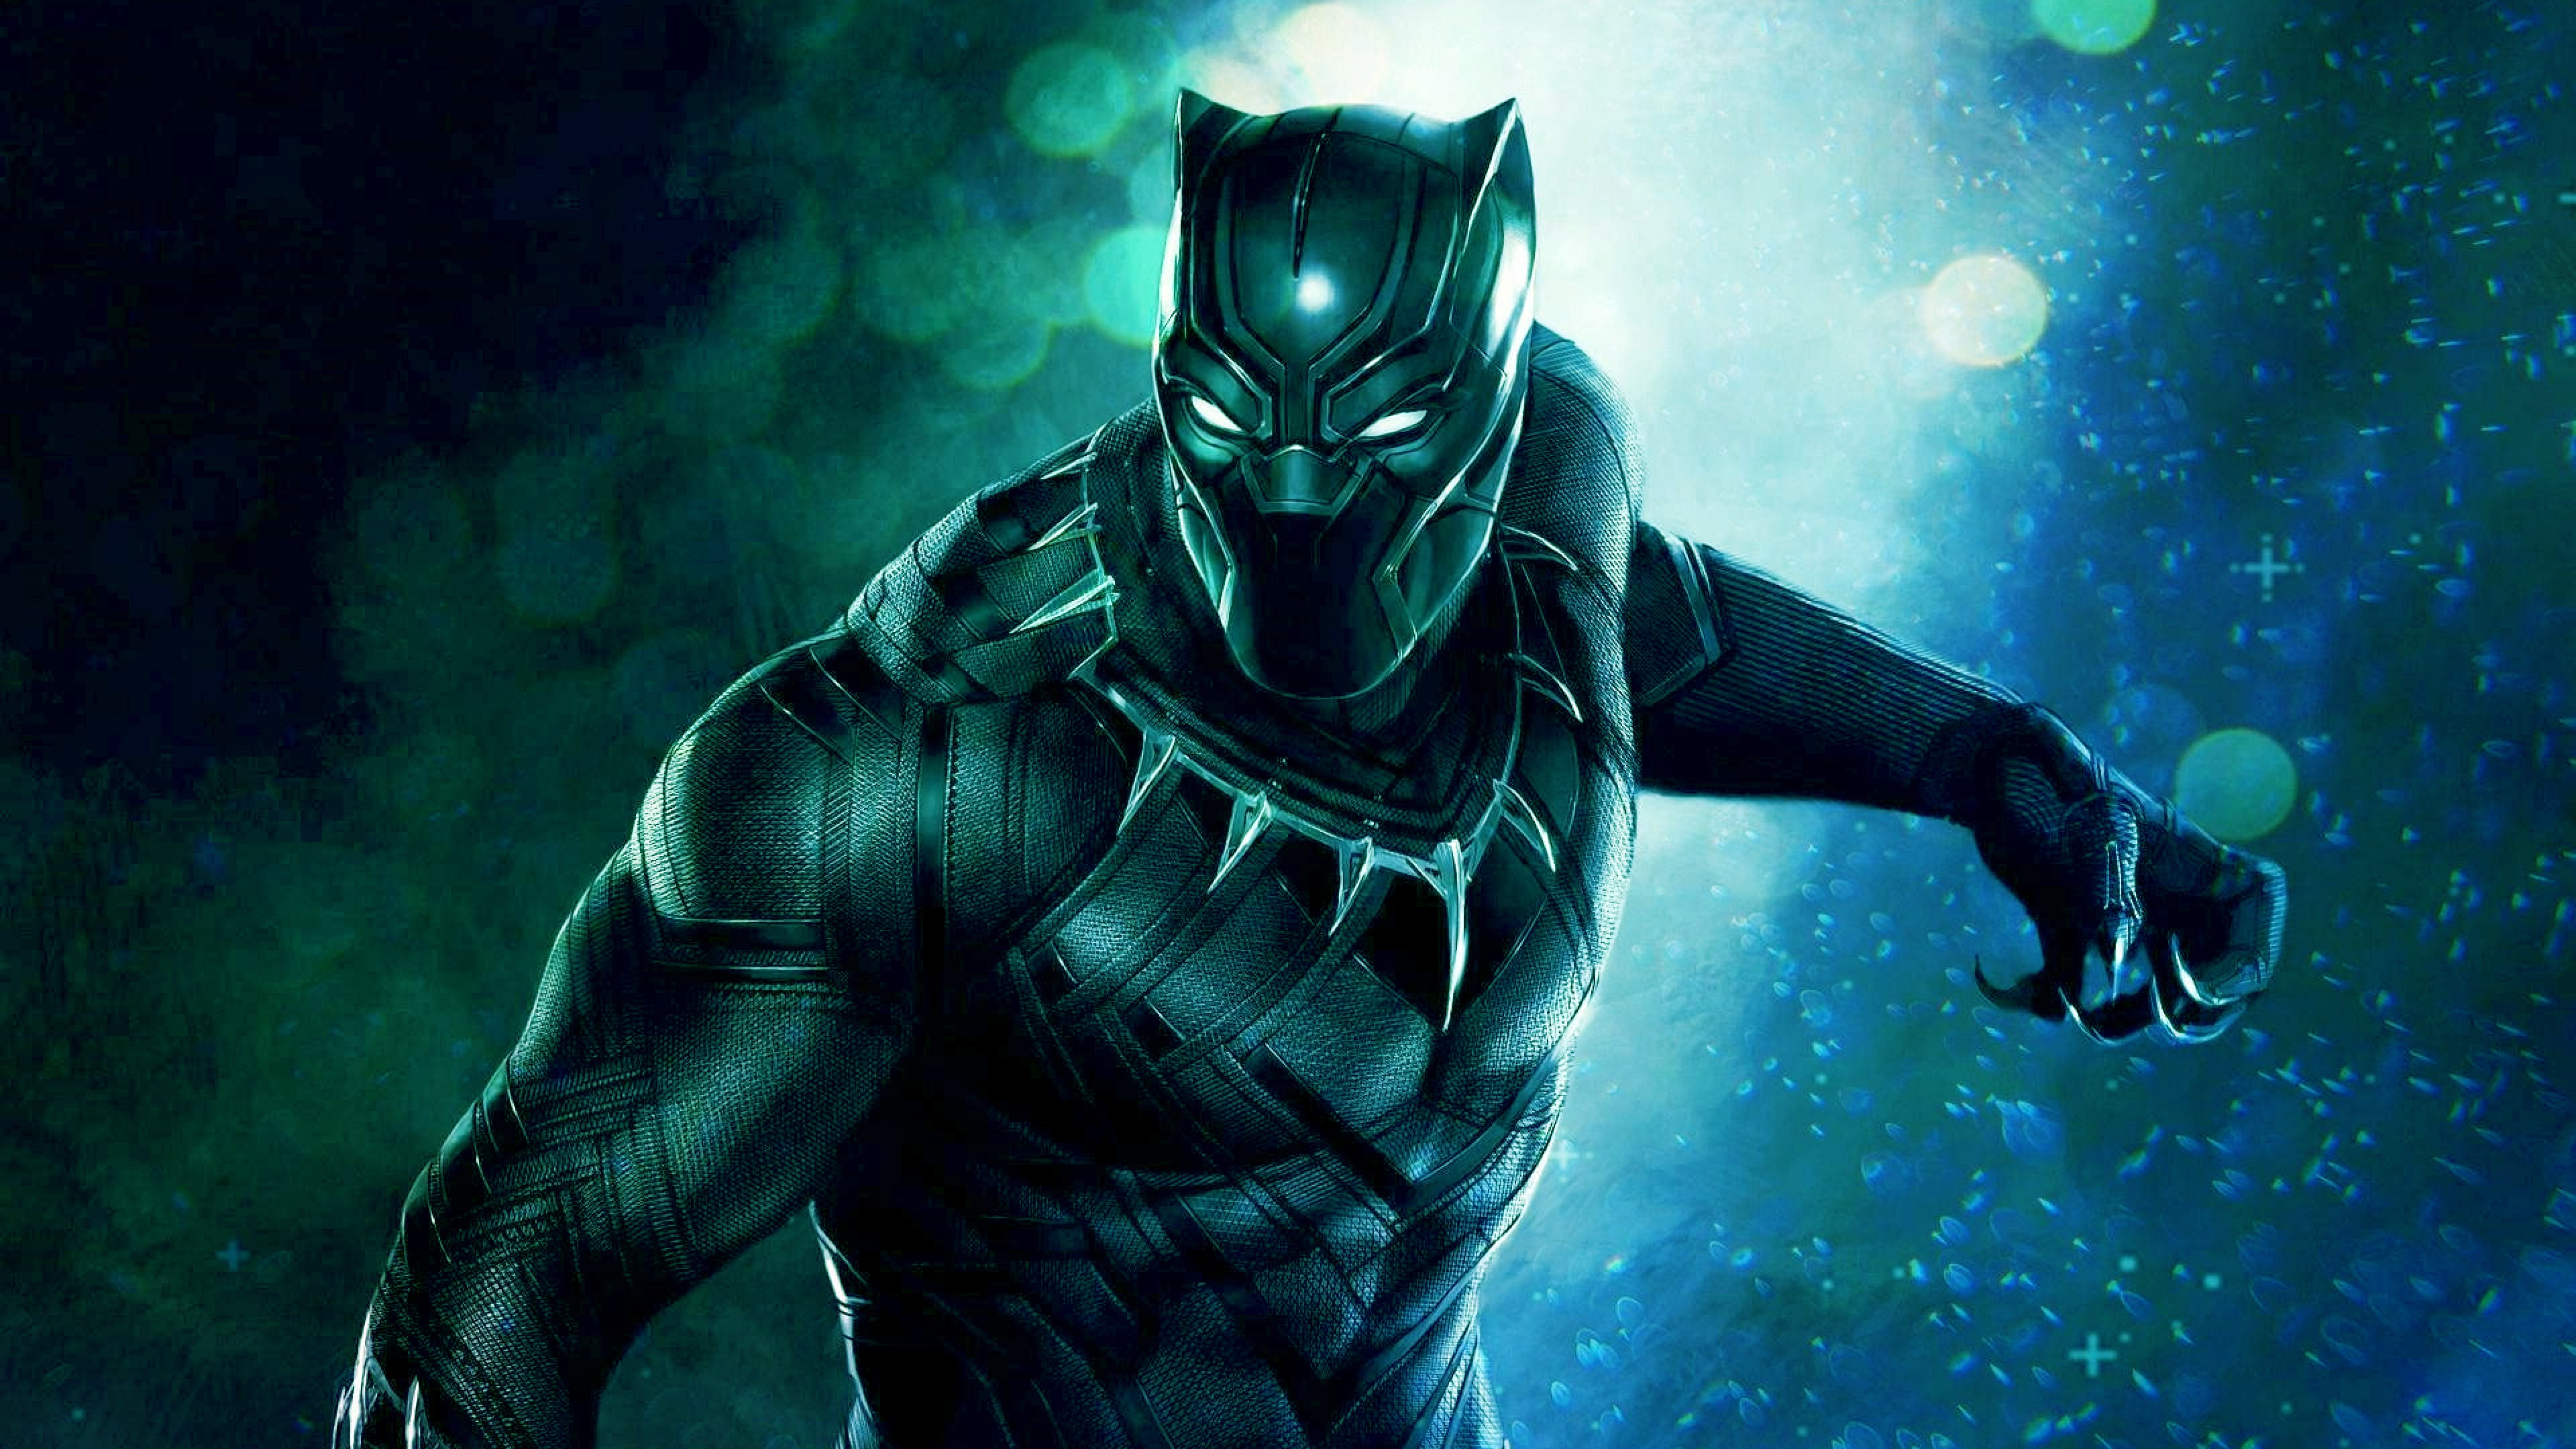 Black Panther 4K Wallpapers   New HD Wallpapers 3840x2160